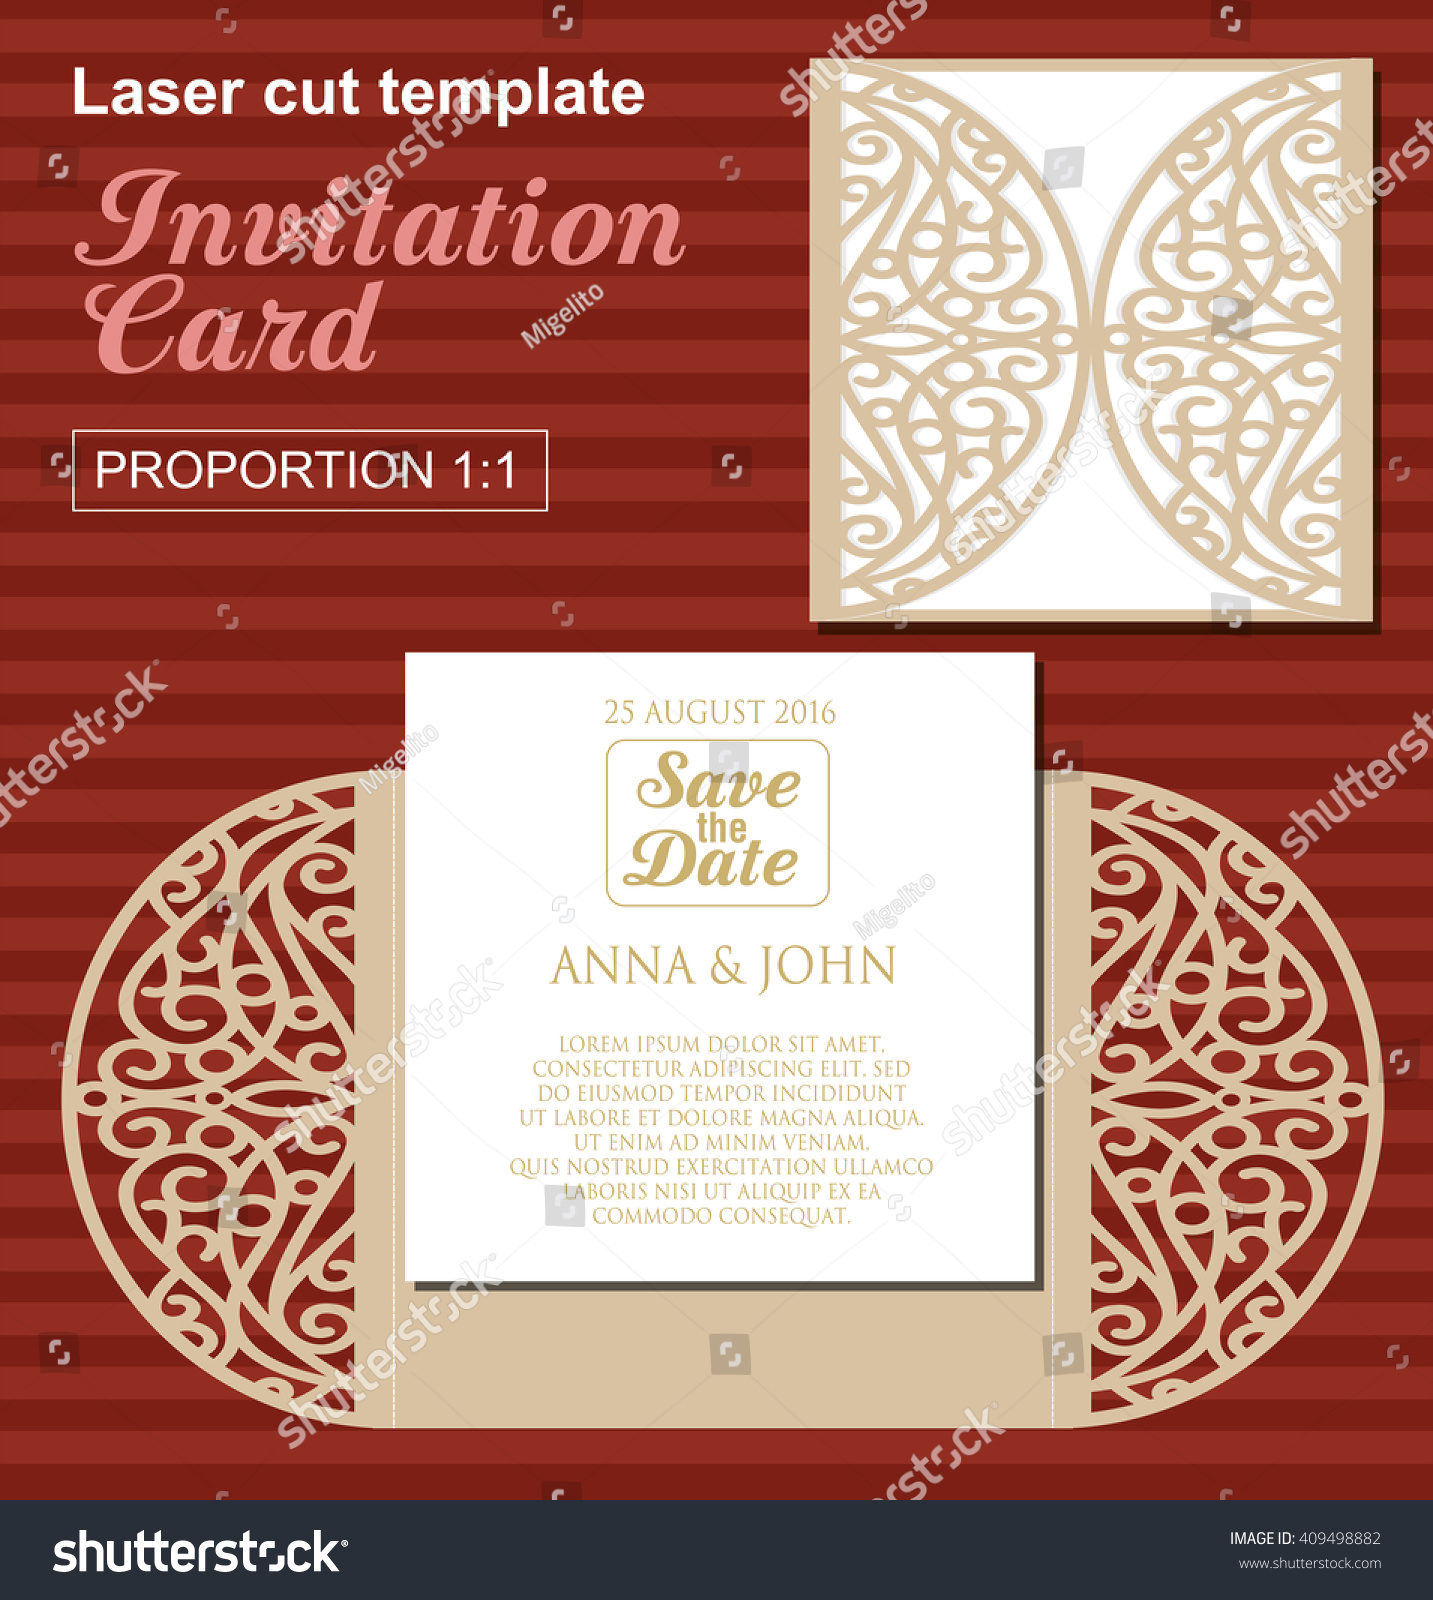 Vector Die Laser Cut Wedding Card Stock Vector (2018) 409498882 ...